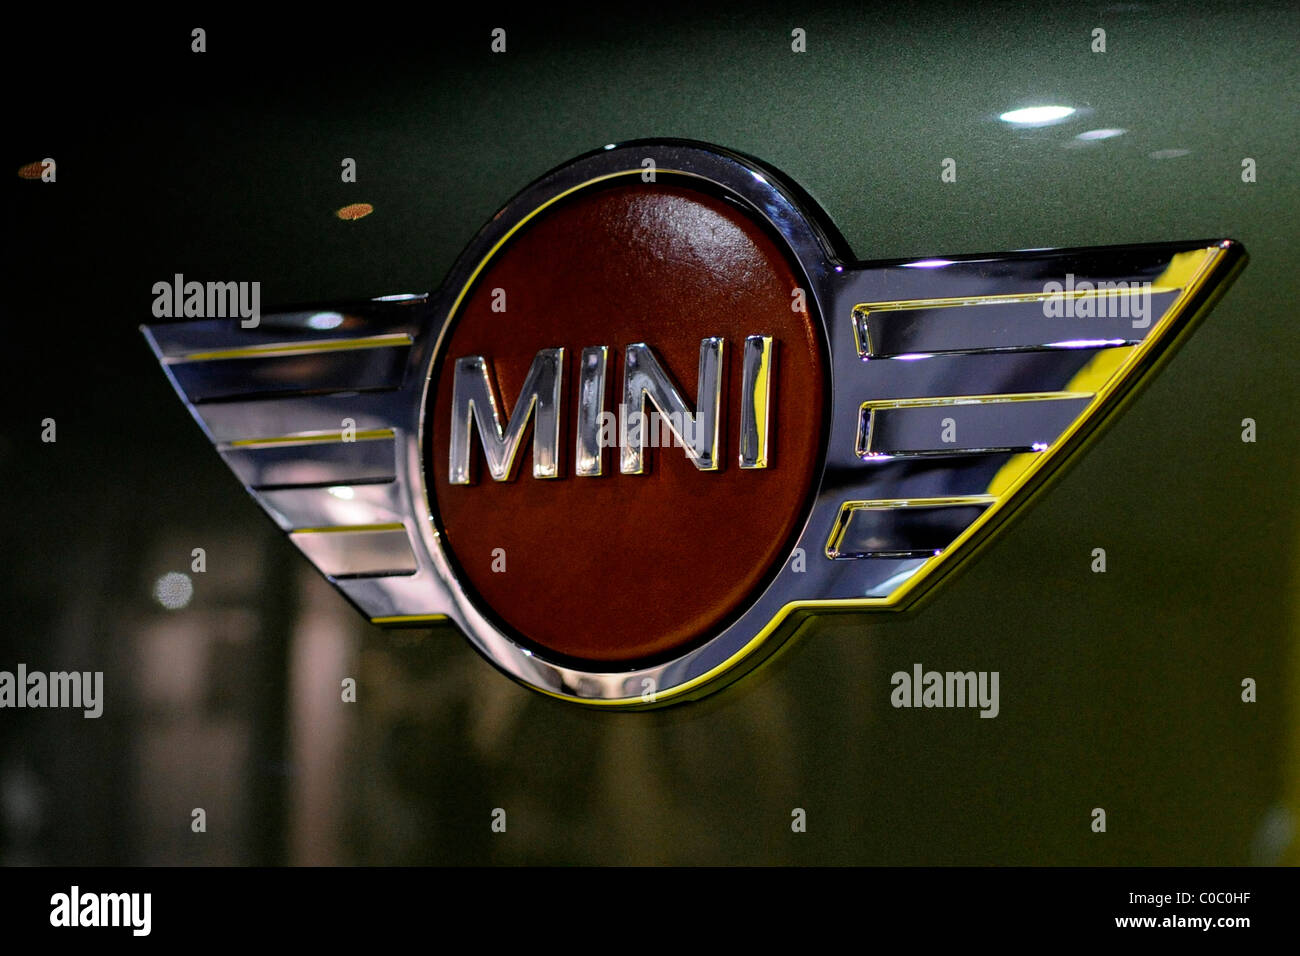 Bmw Mini Car Badge Stock Photos Bmw Mini Car Badge Stock Images